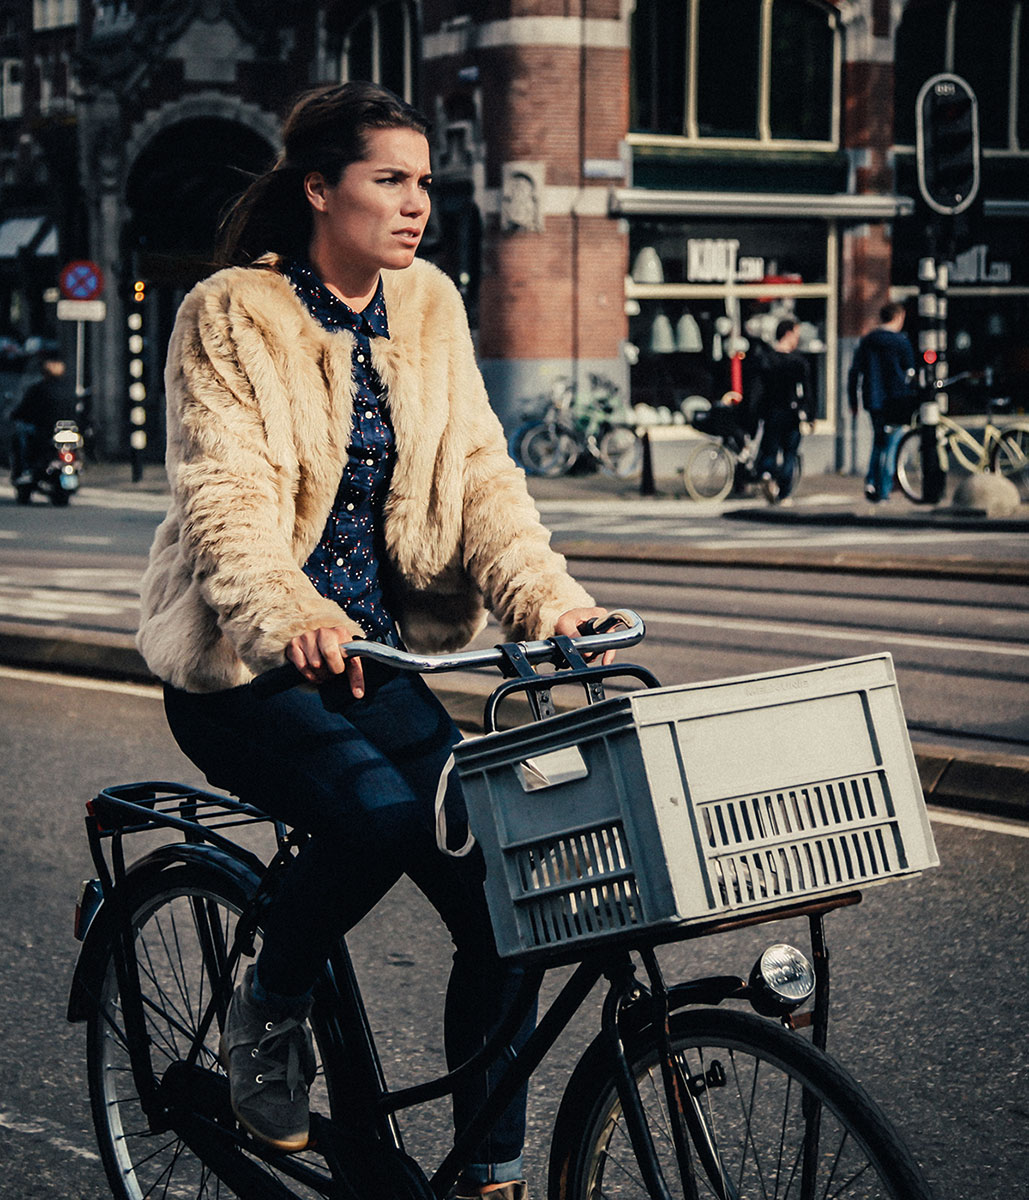 Sable | Bicycle Chic Amsterdam